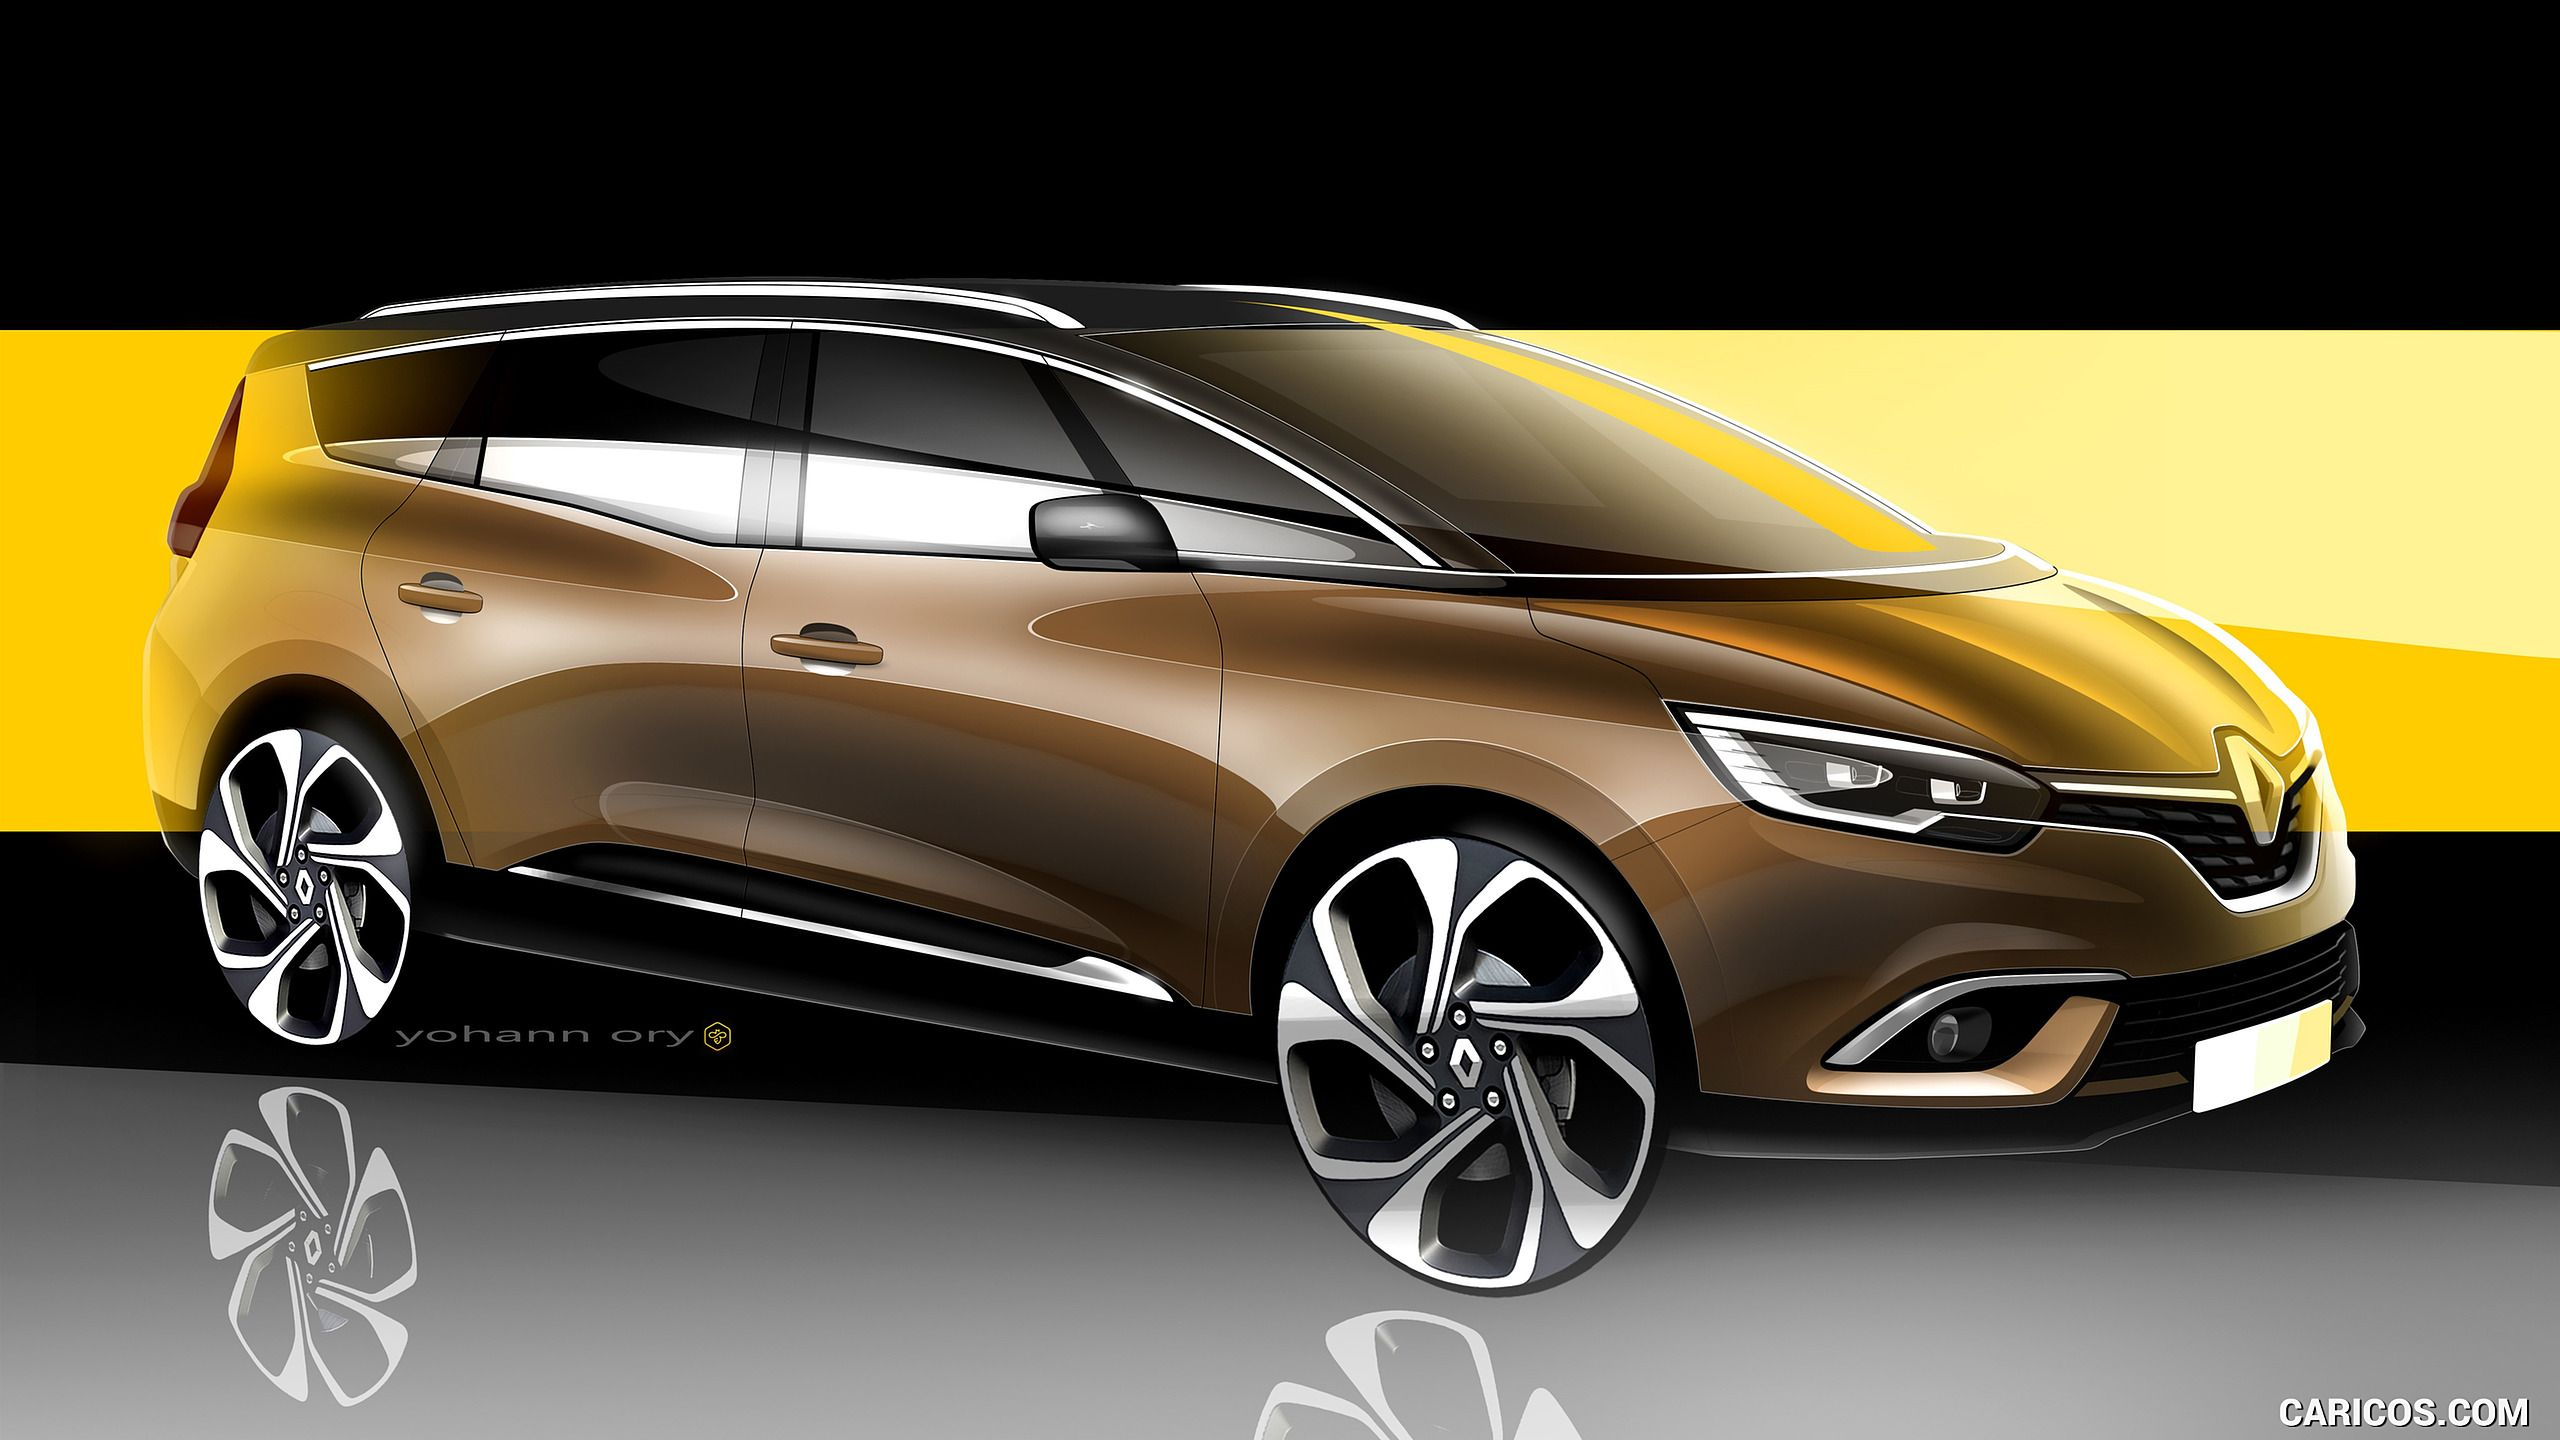 2017 Renault Grand Scenic Wallpaper